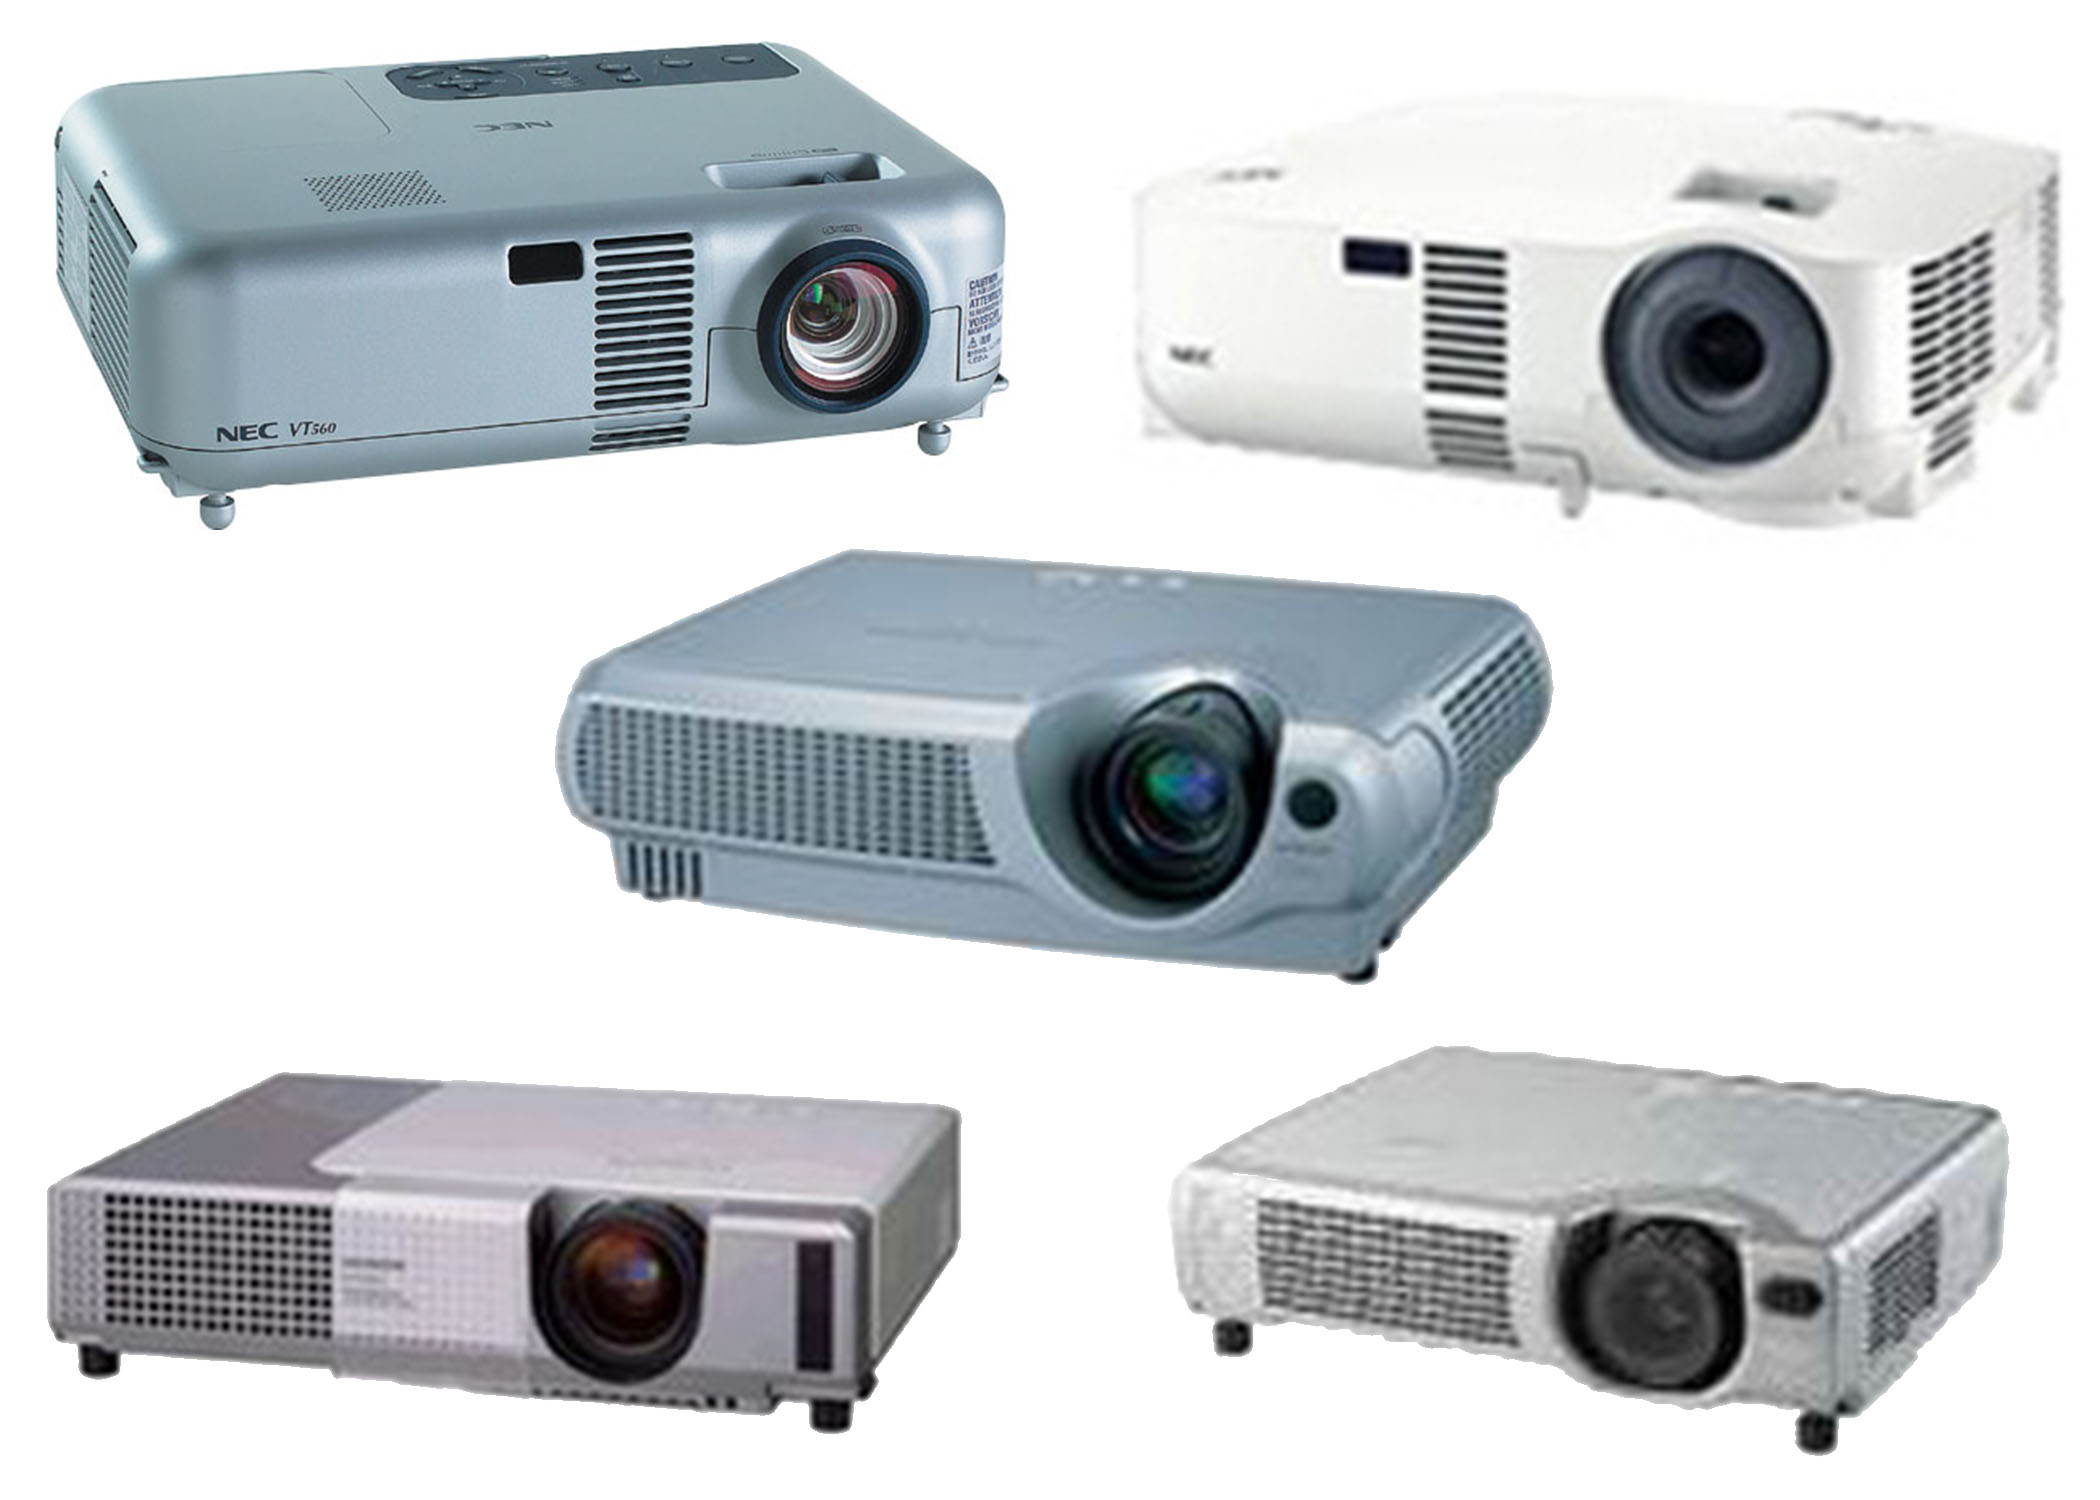 CLEARANCE BUNDLE - Assorted Used NEC and Hitachi SVGA Projectors, 5-Pack